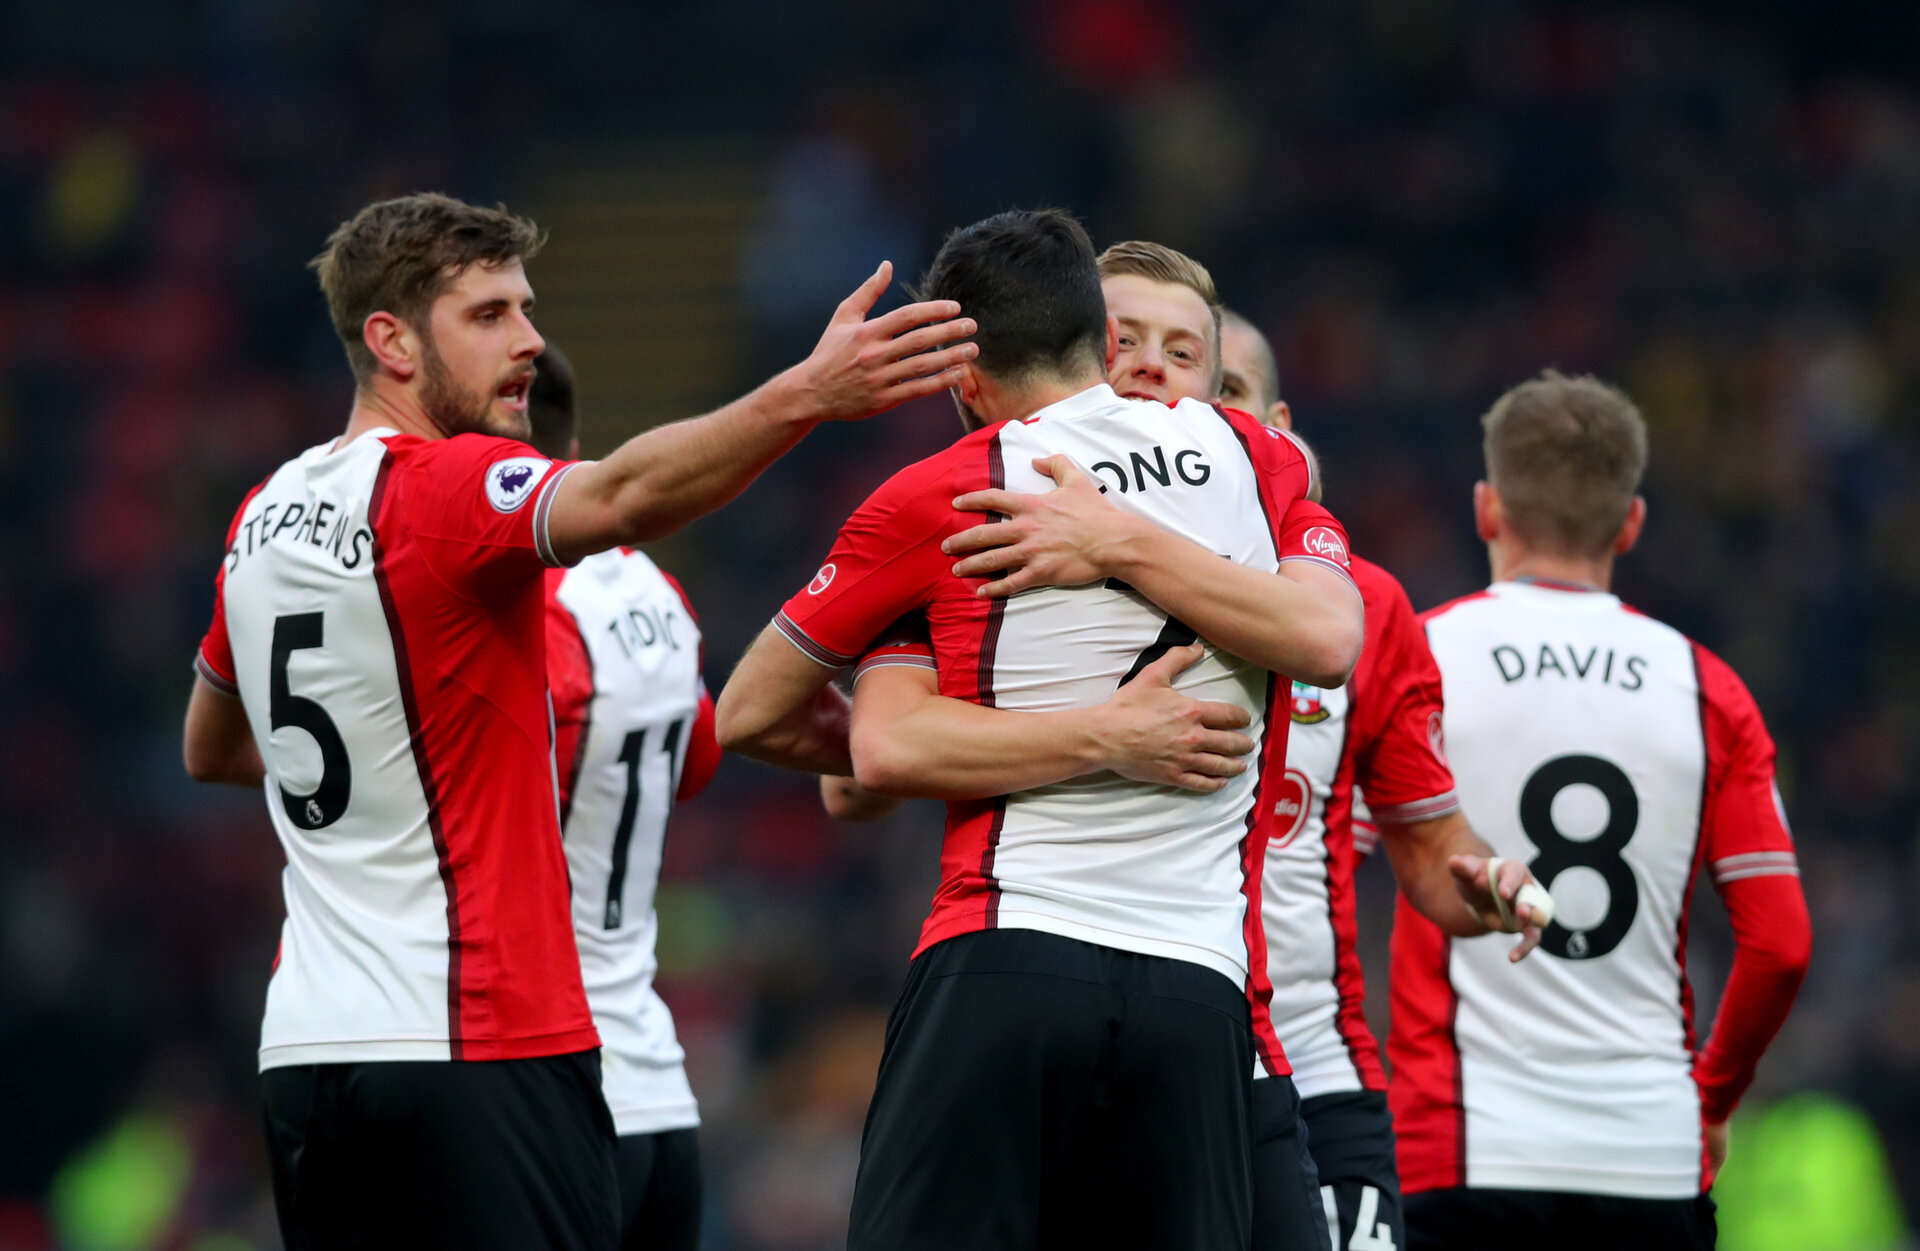 WATFORD, ENGLAND - JANUARY 13: James Ward-Prowse(R) of Southampton celebrates with Shane Long and Jack Stephens(L) during the Premier League match between Watford and Southampton at Vicarage Road on January 13, 2018 in Watford, England. (Photo by Matt Watson/Southampton FC via Getty Images)